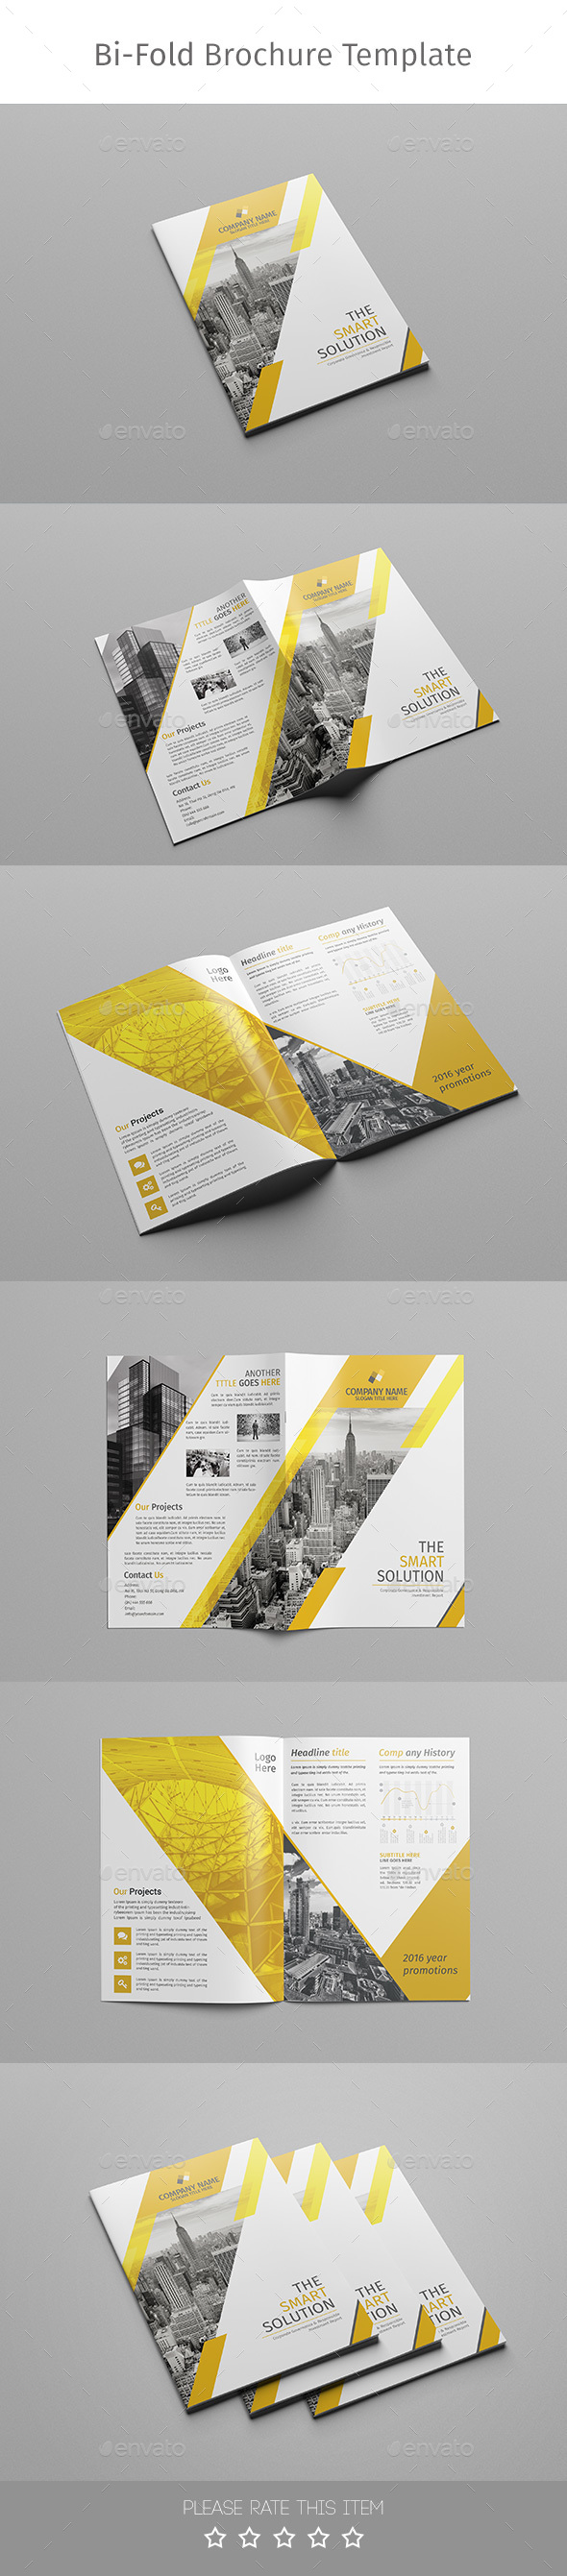 Corporate bi fold brochure multipurpose 02 by moverick for Corporate bi fold brochure template